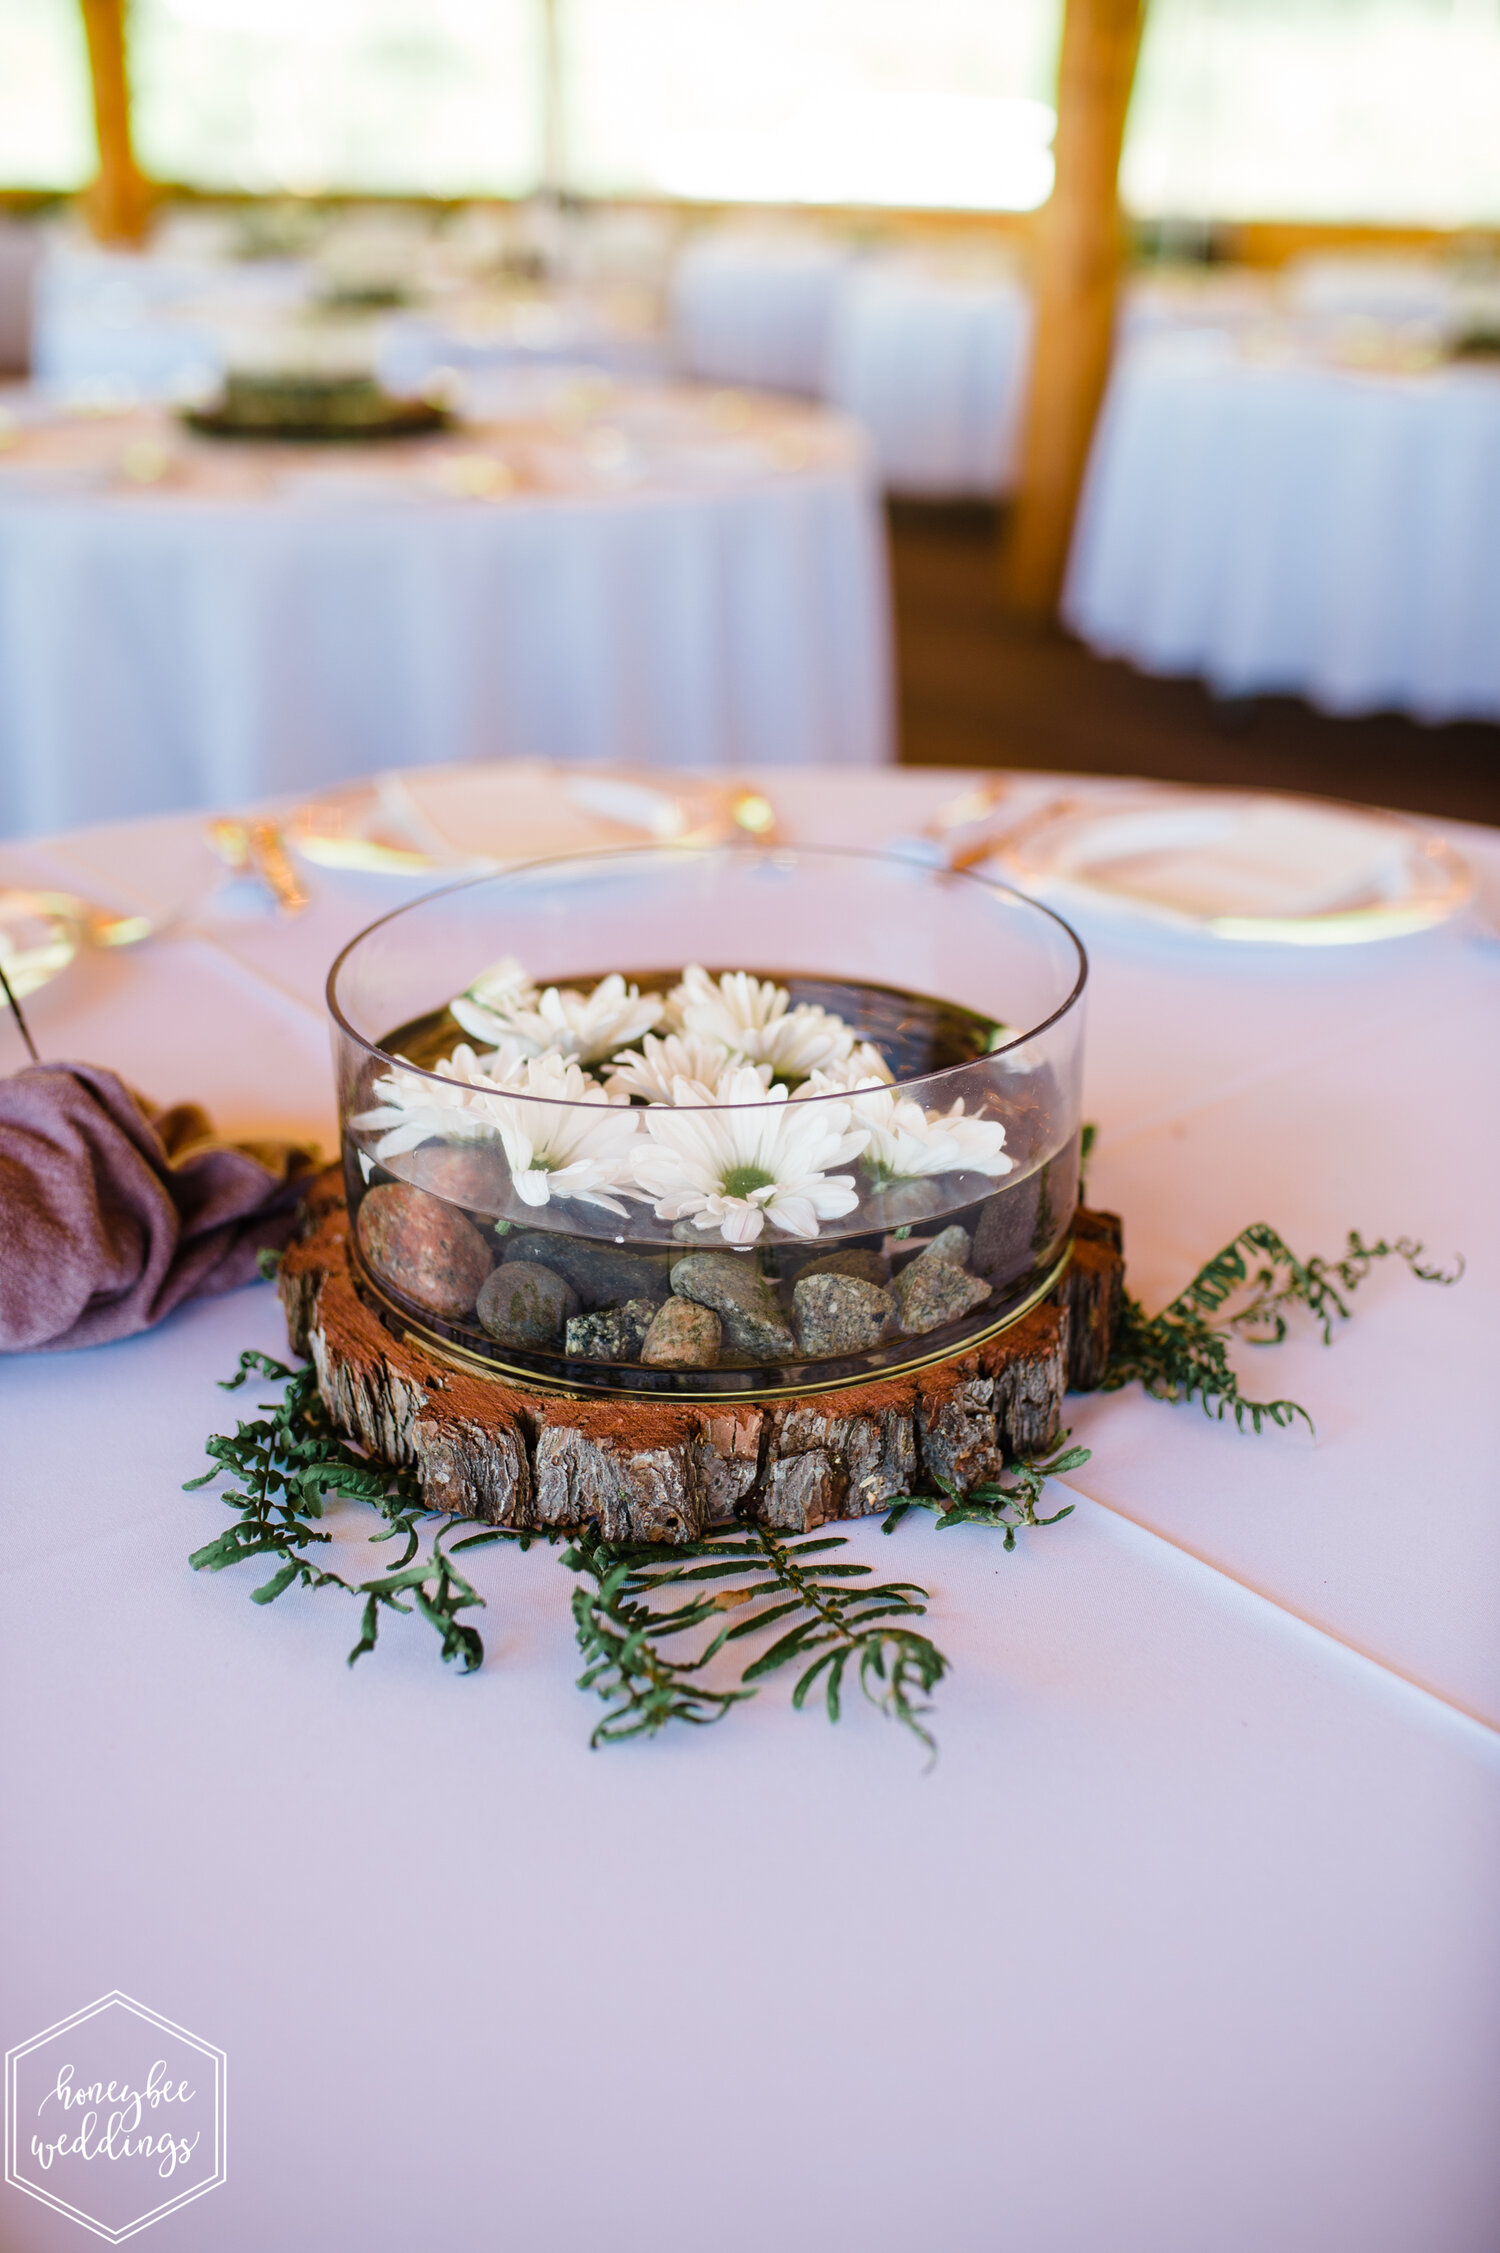 078Glacier National Park Wedding_Glacier Outdoor Center_Honeybee Weddings_Anna & Seth_July 21, 2019-2123.jpg